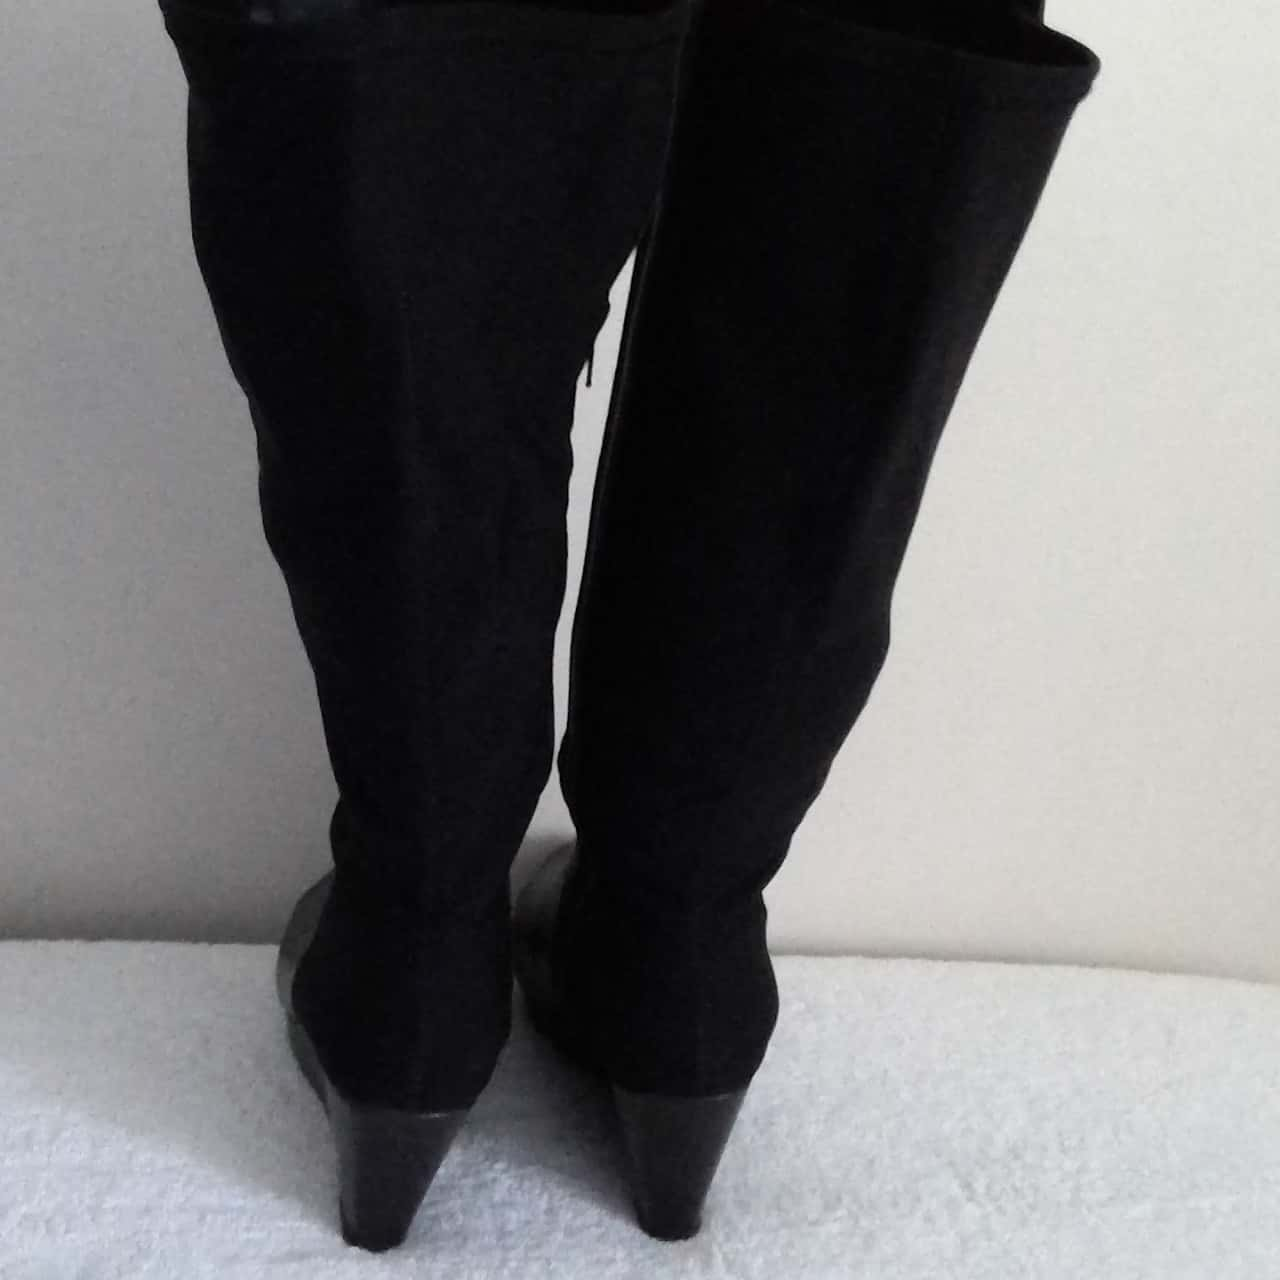 Womens  CITY CHIC KNEE HI WEDGE HEEL BOOTS Size 80 (label size 38) Black Leather